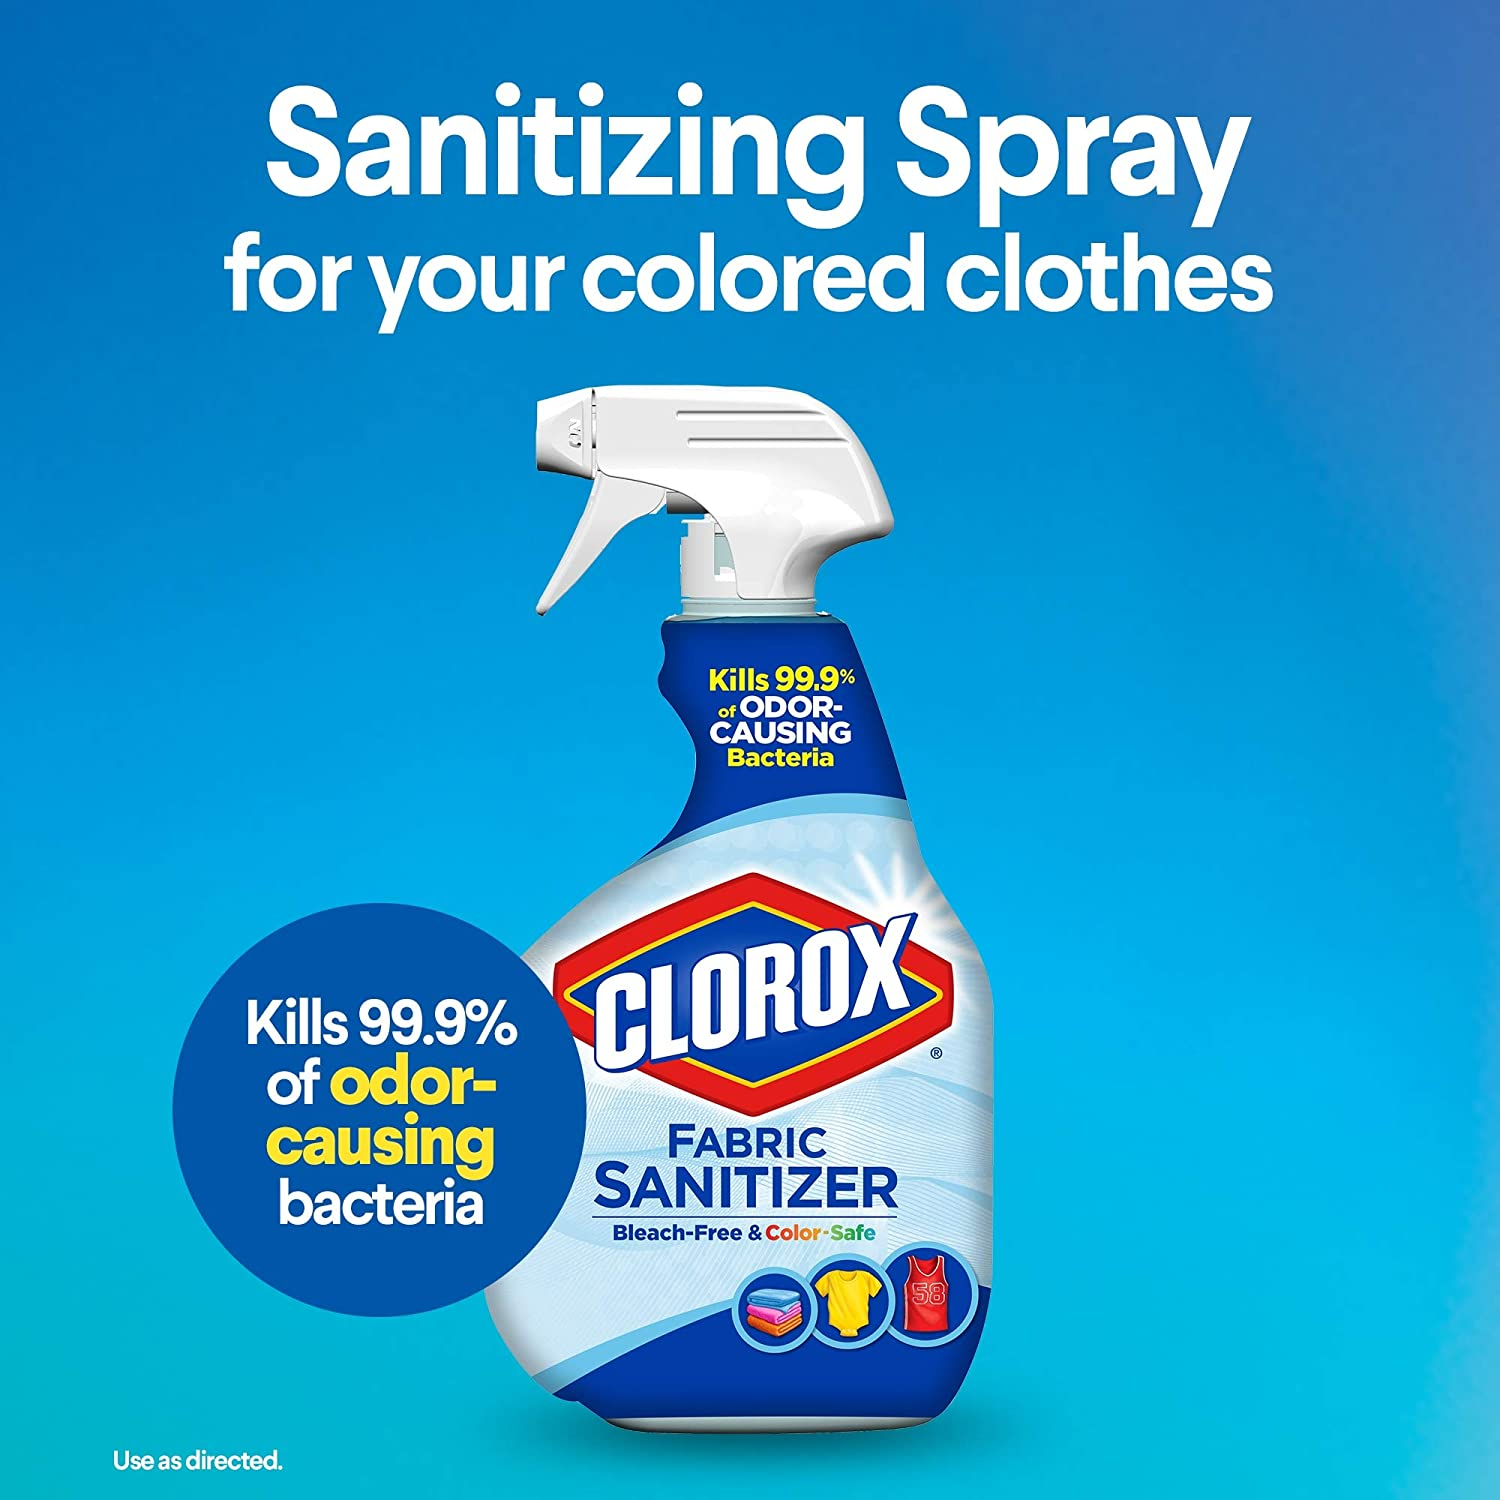 clorox fabric sanitizer spray